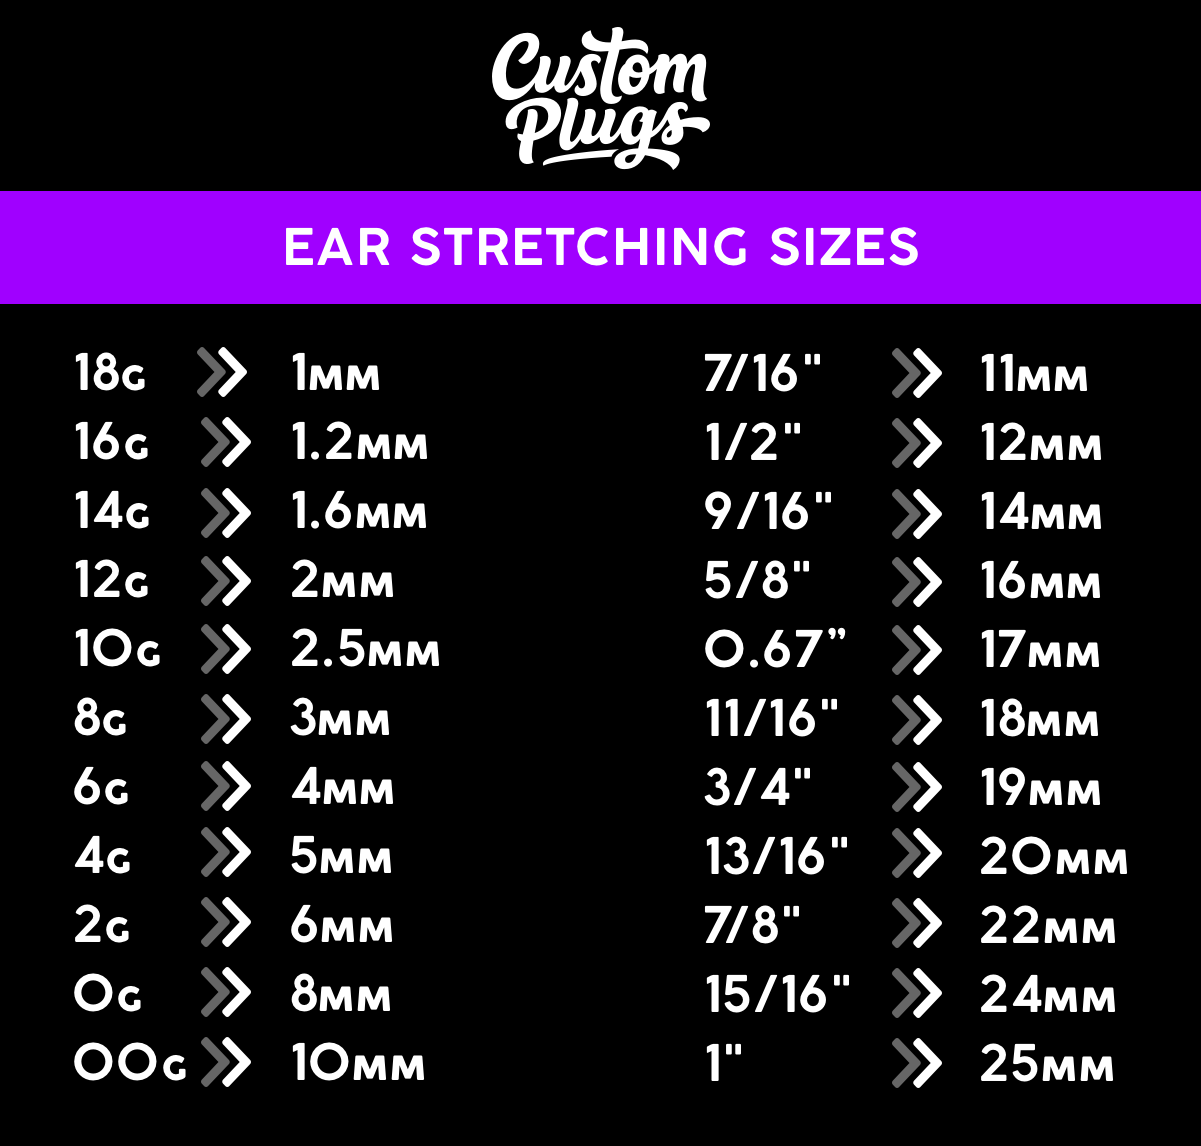 ear stretching sizes